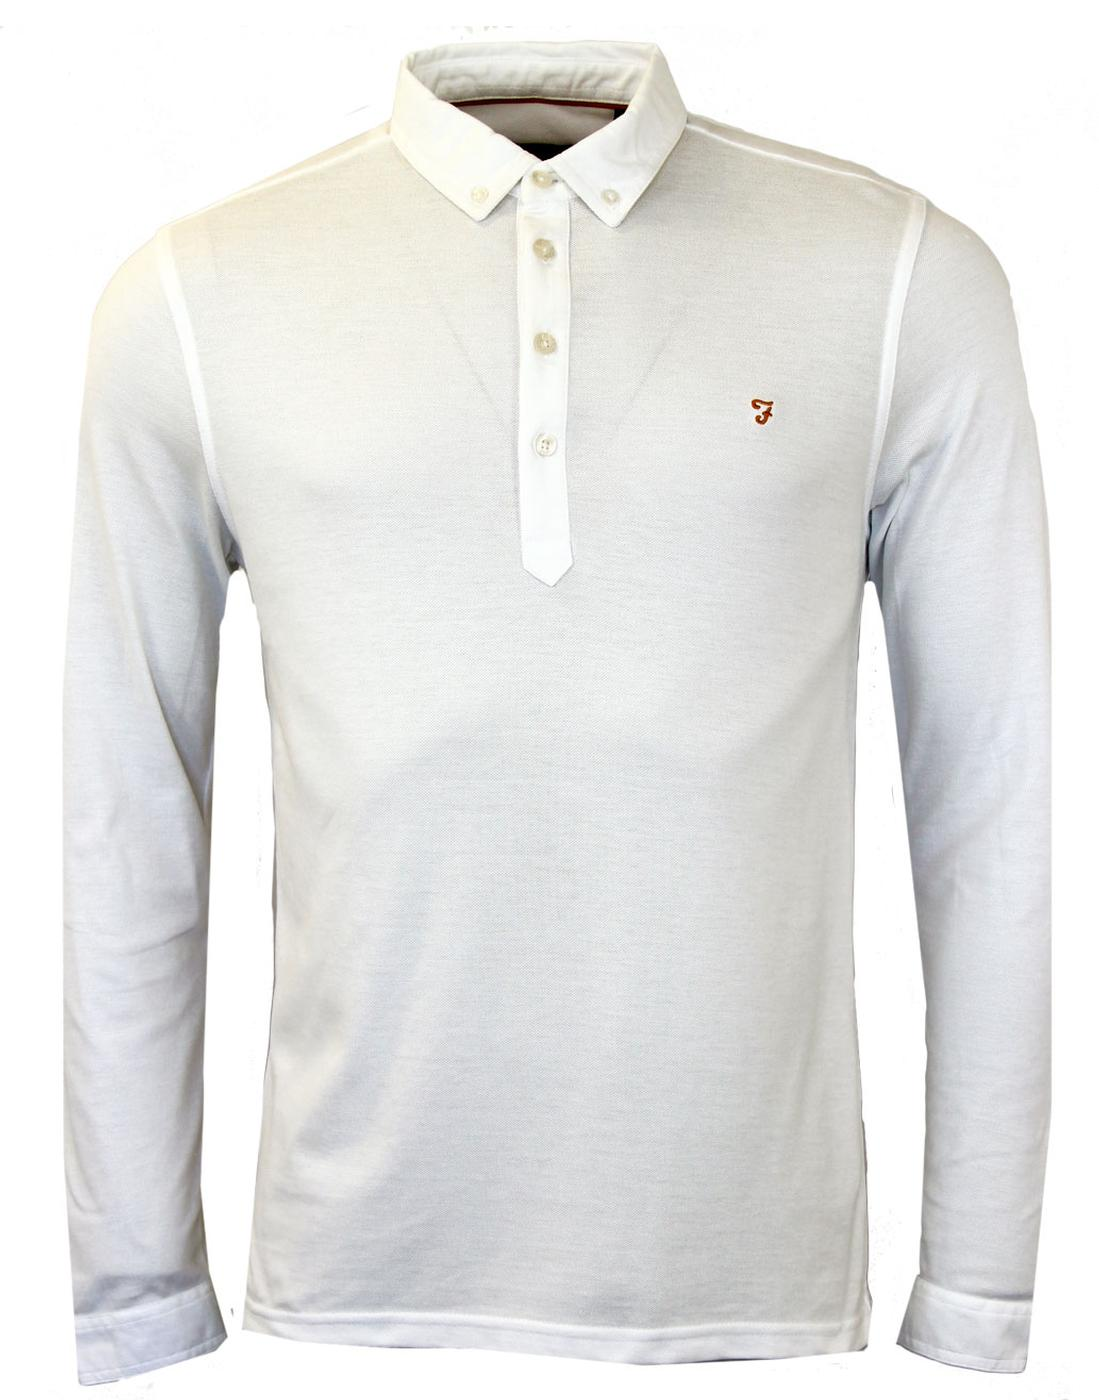 Merriweather FARAH VINTAGE Retro Mod Polo (W)